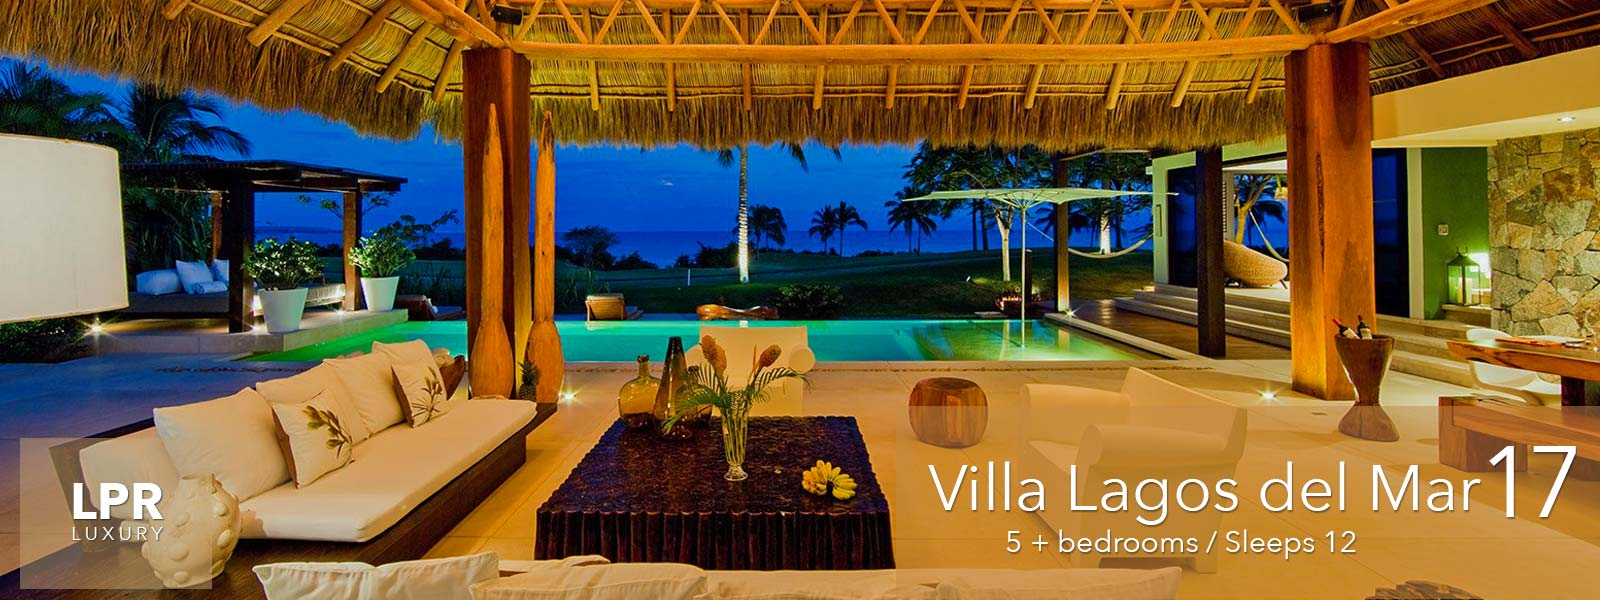 Villa Lagos del Mar 17 - Luxury Vacation Rental Villa on the Jack Nicklaus golf course at the Punta Mita Resort, Riviera Nayarit, Mexico